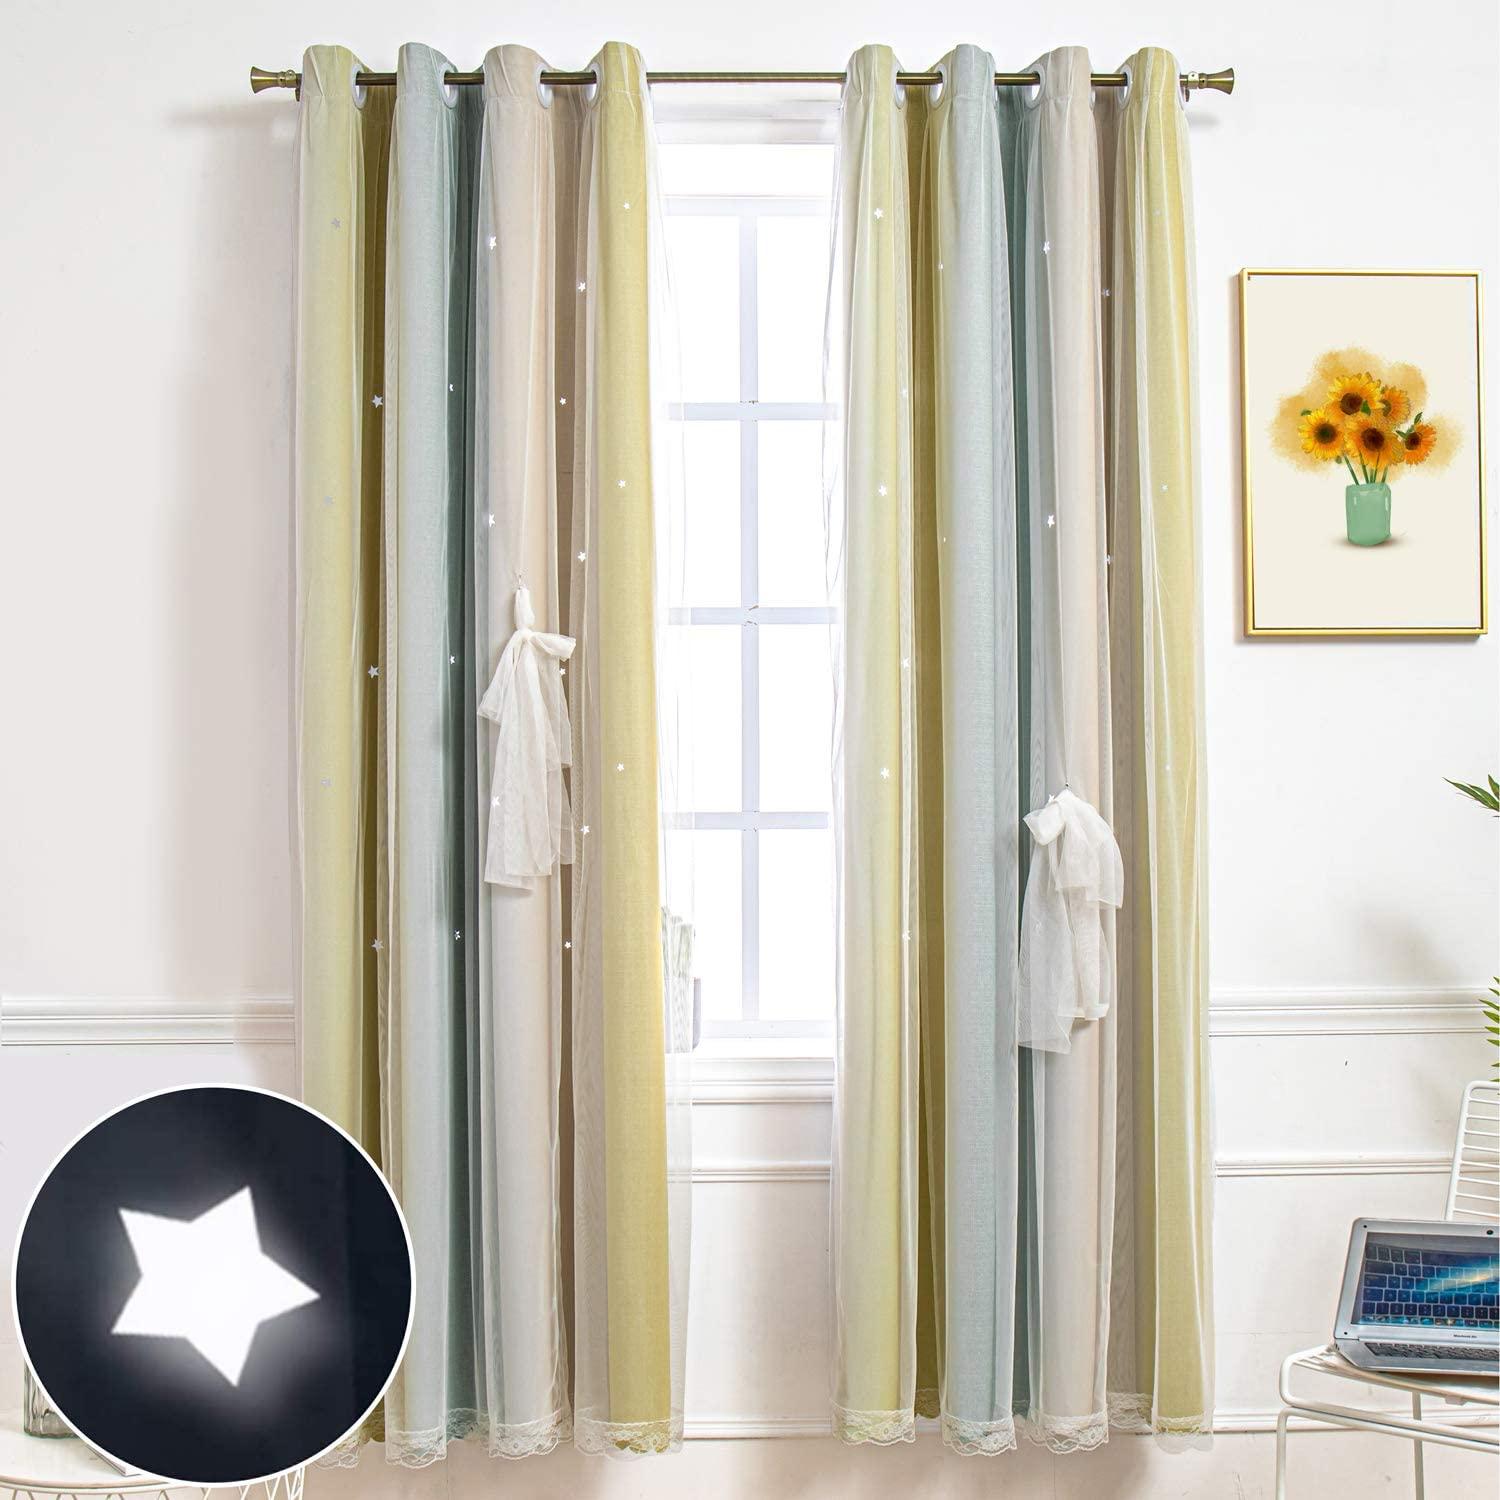 Hughapy Star Curtains Stars Blackout Curtains for Kids Girls Bedroom Living Room Colorful Double Layer Star Cut Out Stripe Window Curtains, 1 Panel -( 52W x 63L, Yellow / Green)